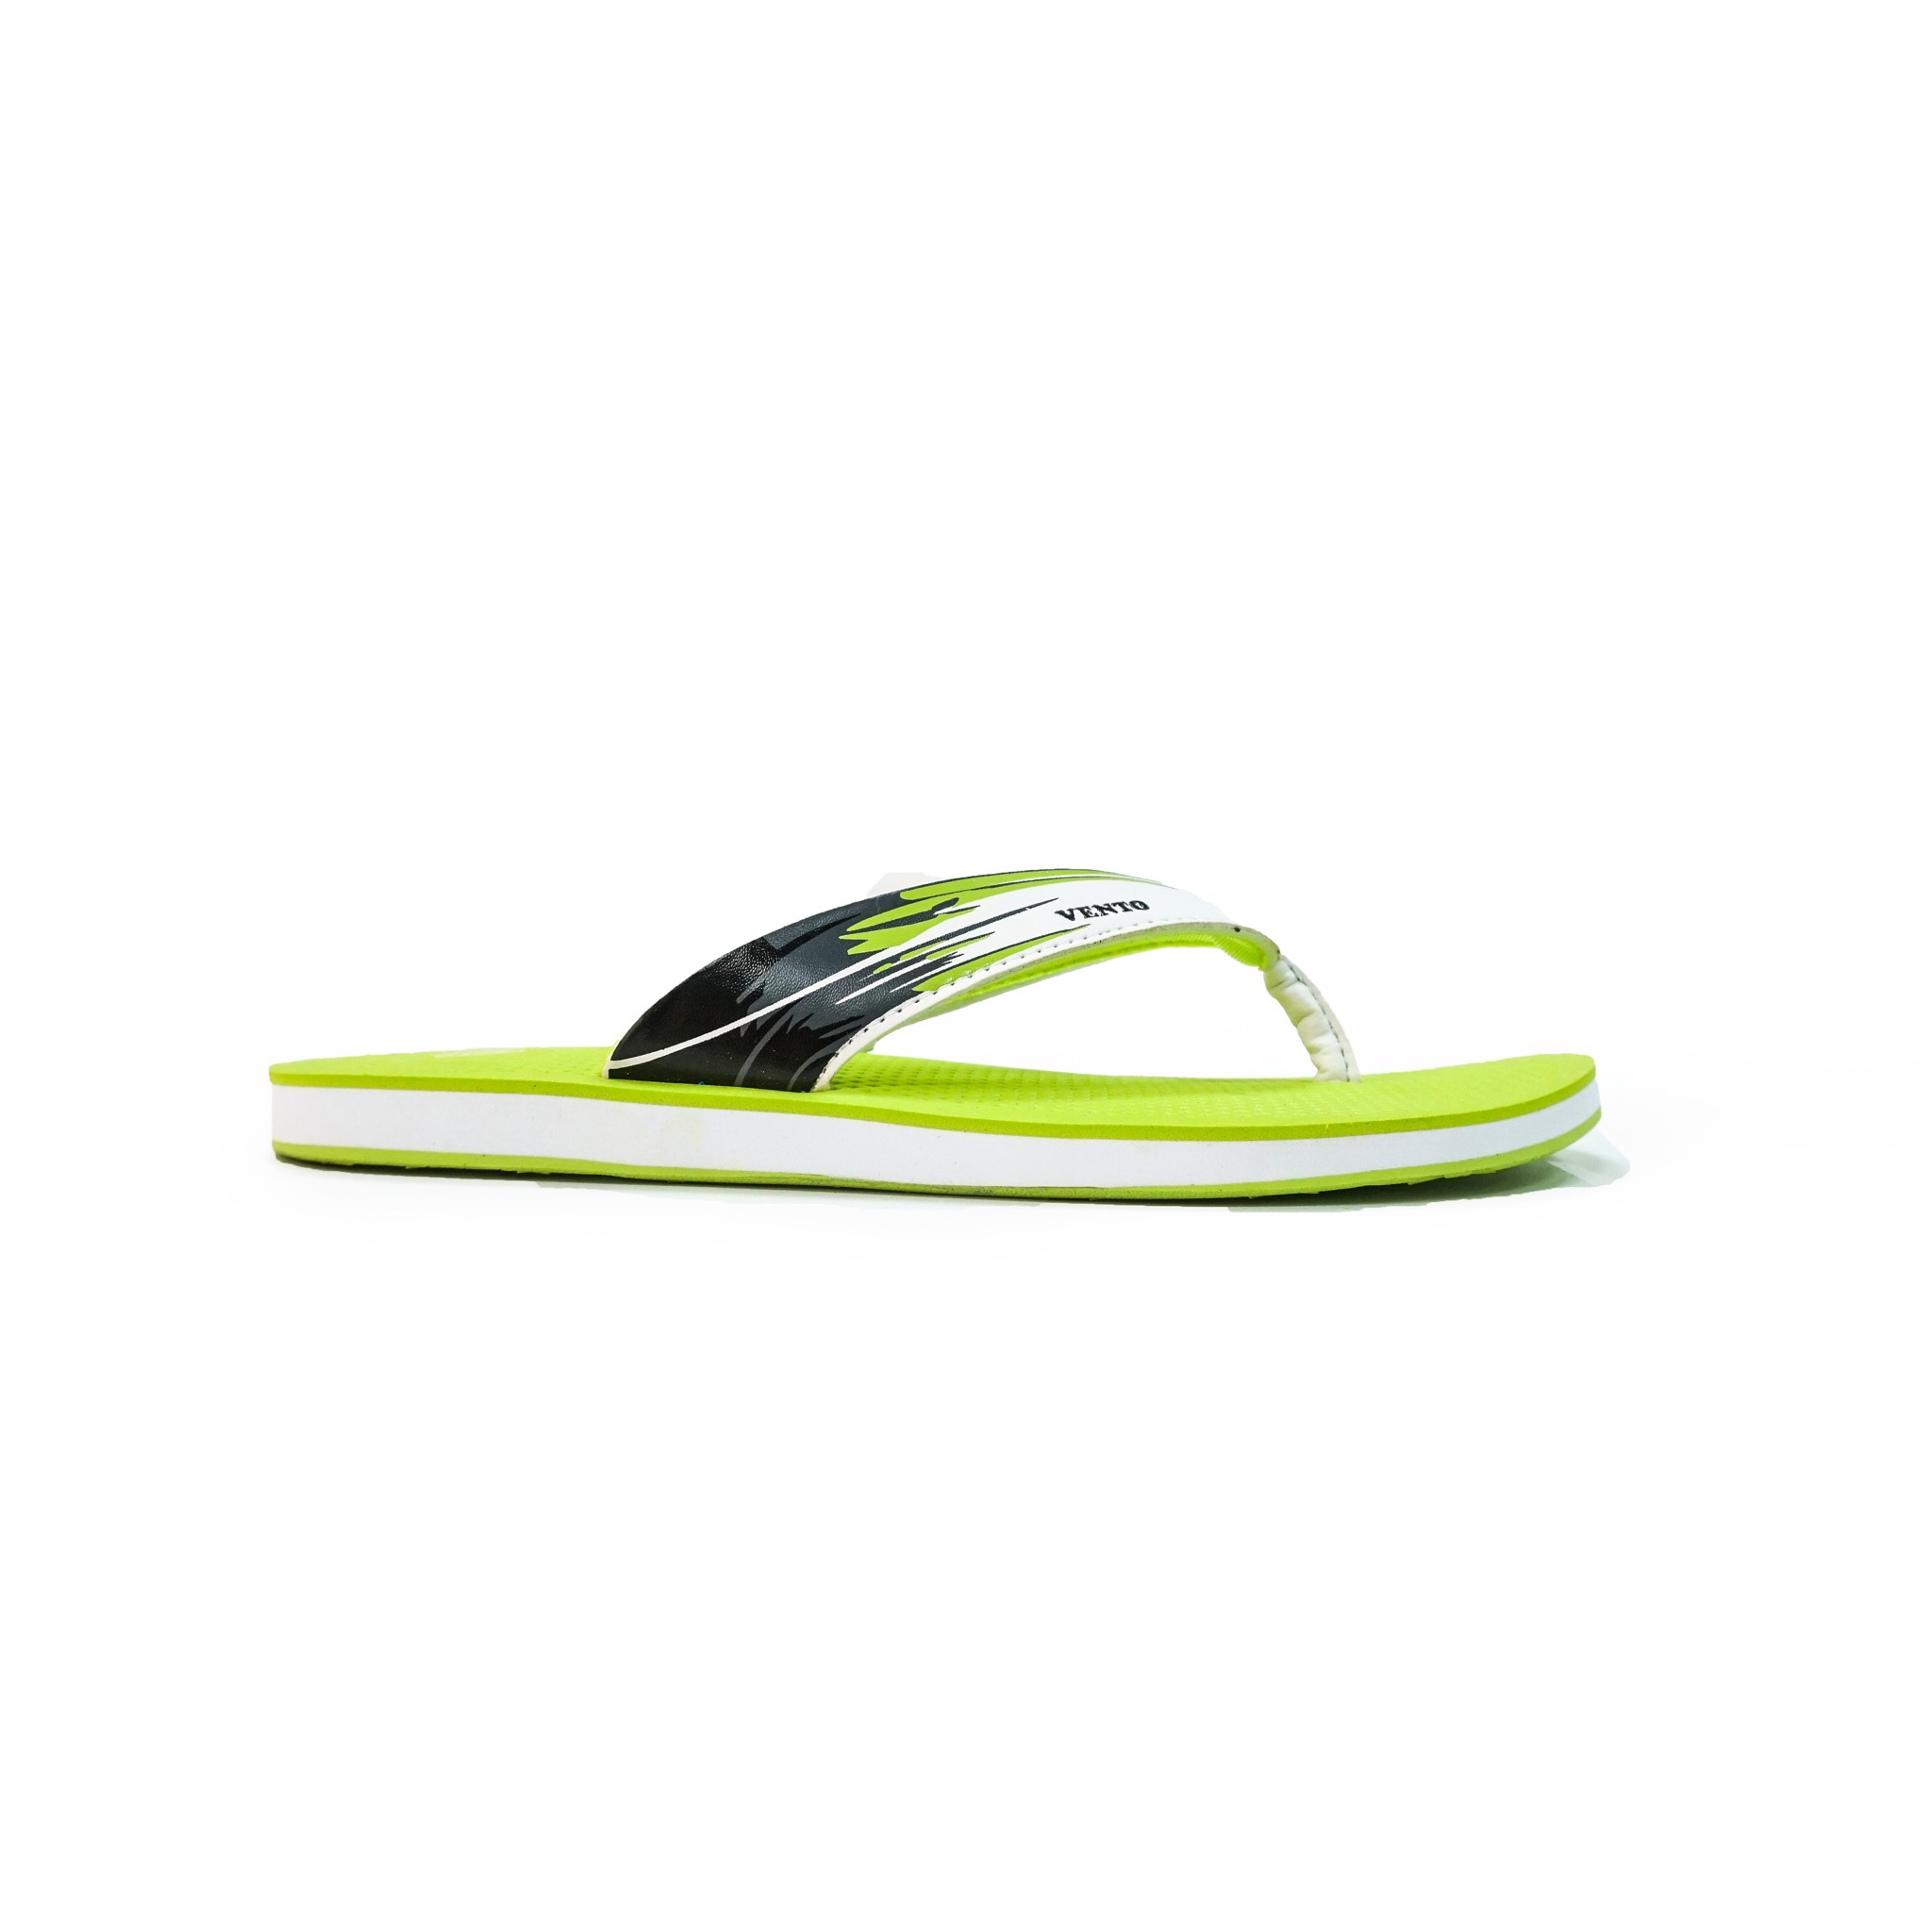 Vento Flip-Flop Slippers Green